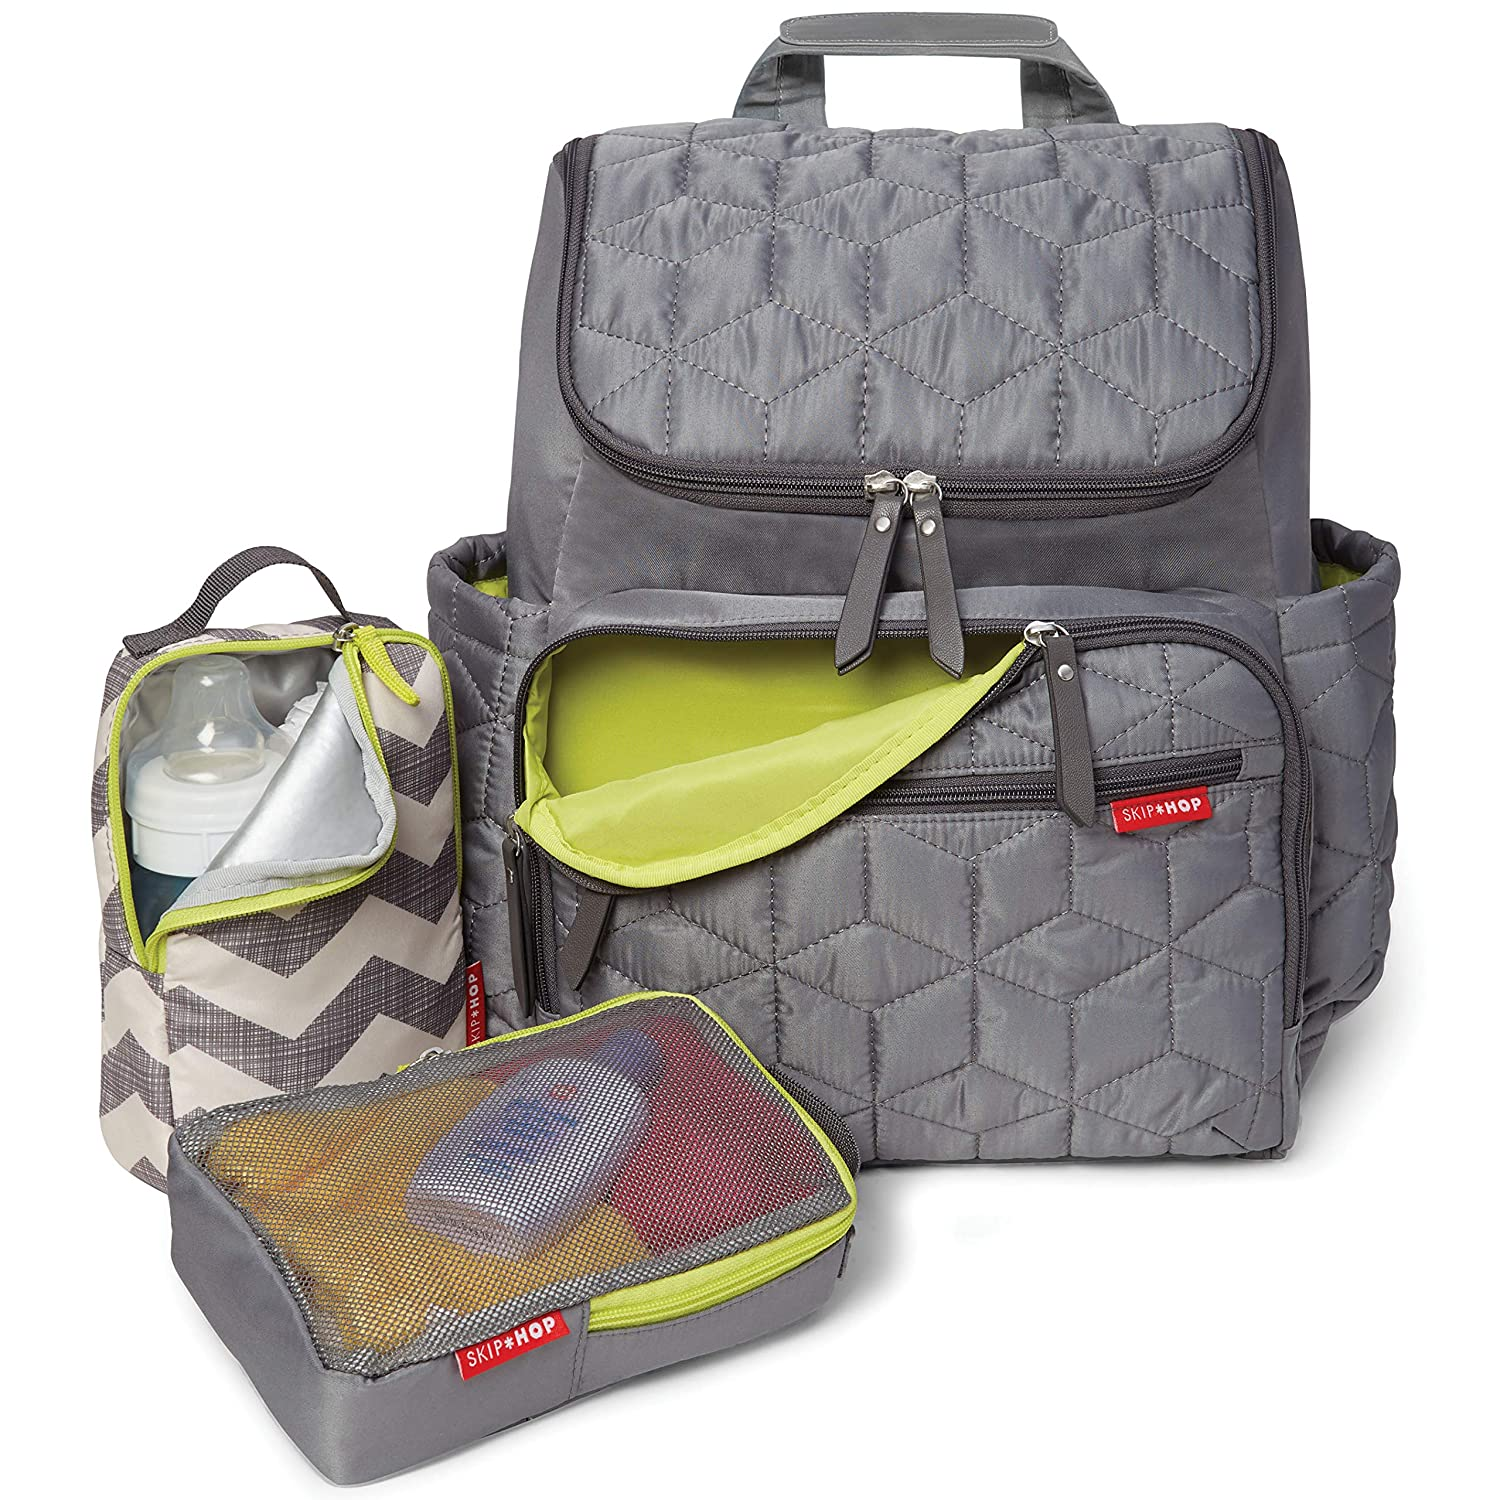 Skip Hop Diaper Bag Backpack: Forma, Multi-Function Baby Travel Bag with Changing Pad & Stroller Attachment, Grey